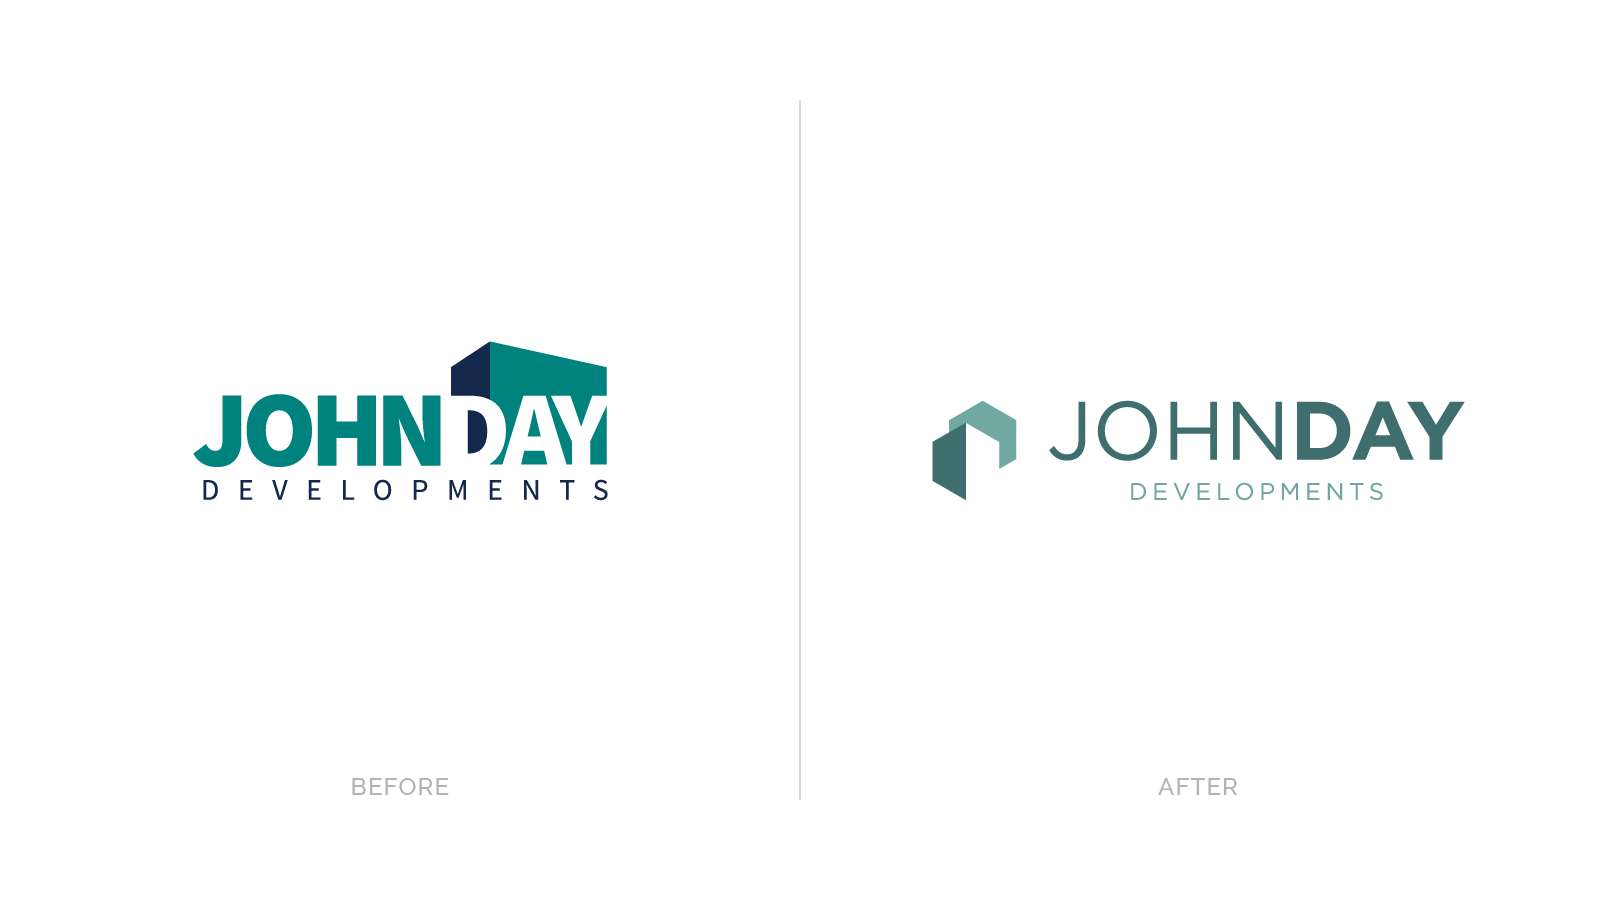 John Day logos before and after